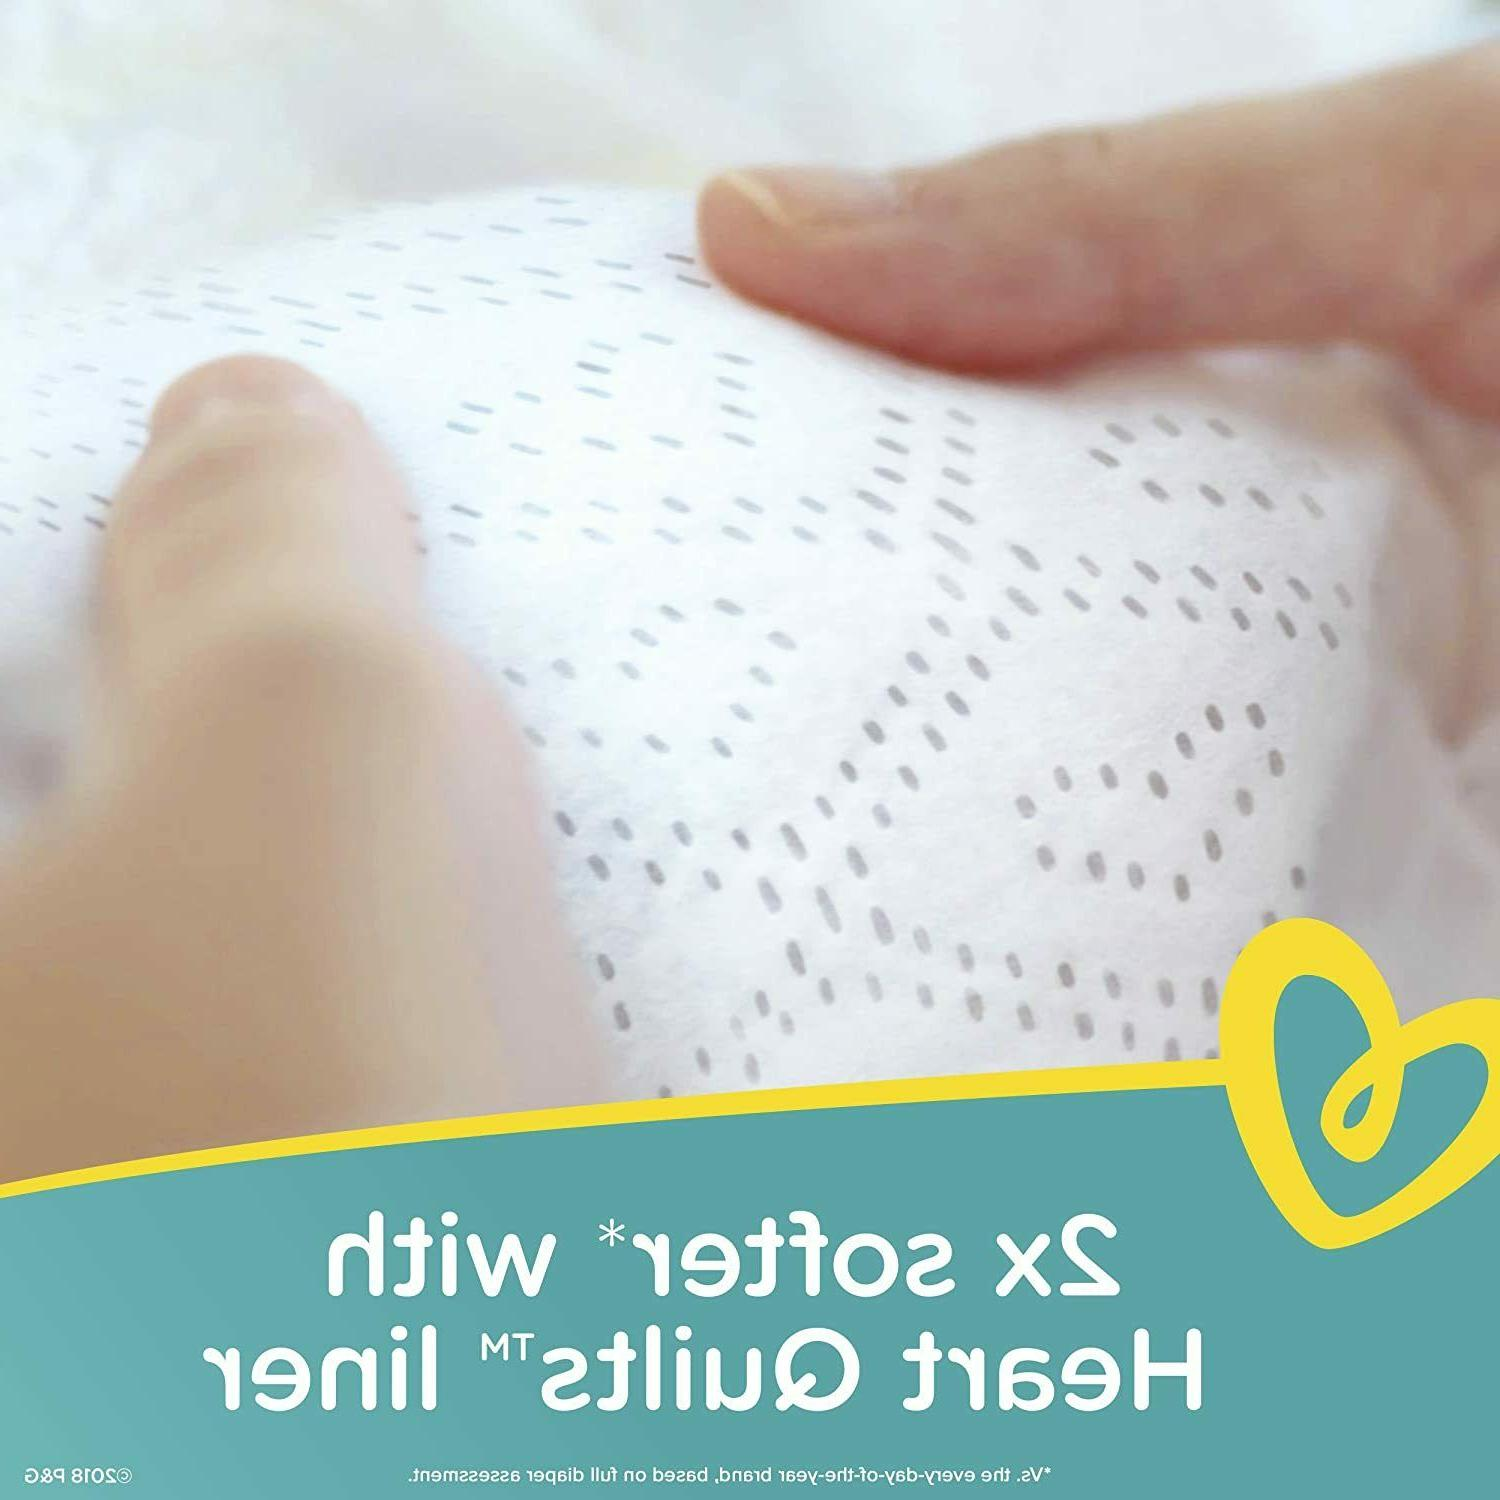 Diapers 1, 2, 3, 4 - Pampers